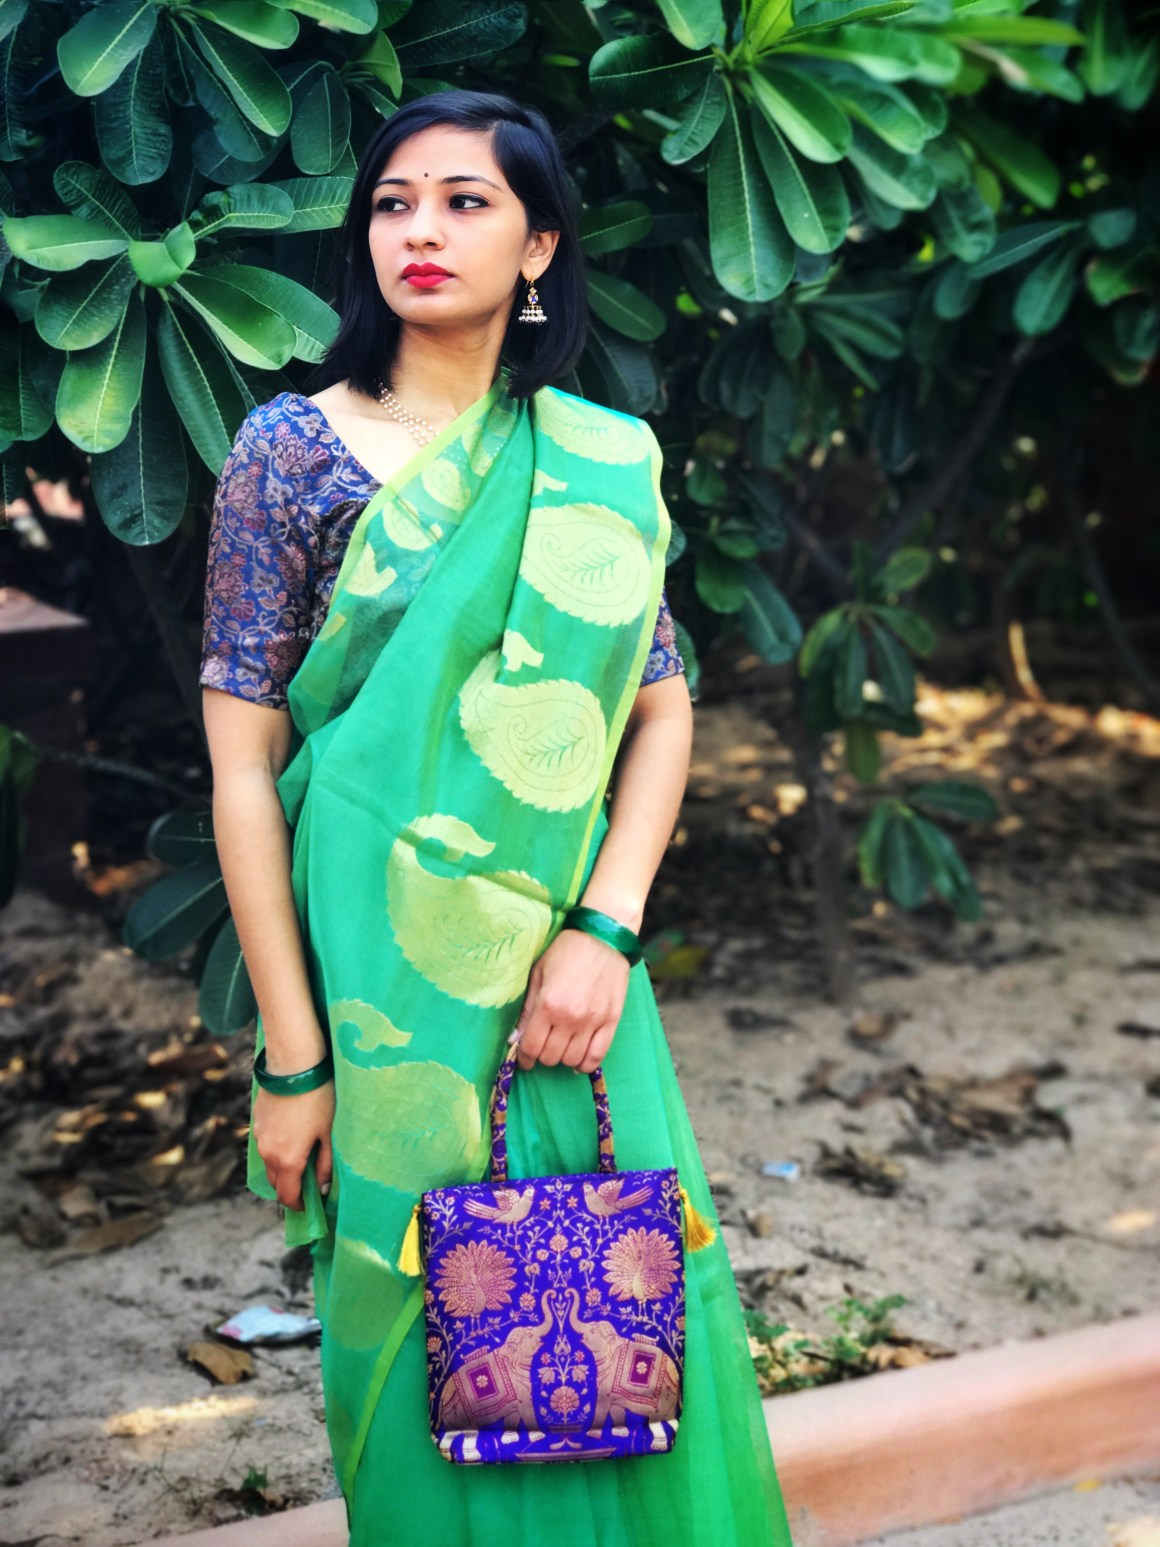 Celebrating the Saree - Green Supernet saree, brocade blouse and bag